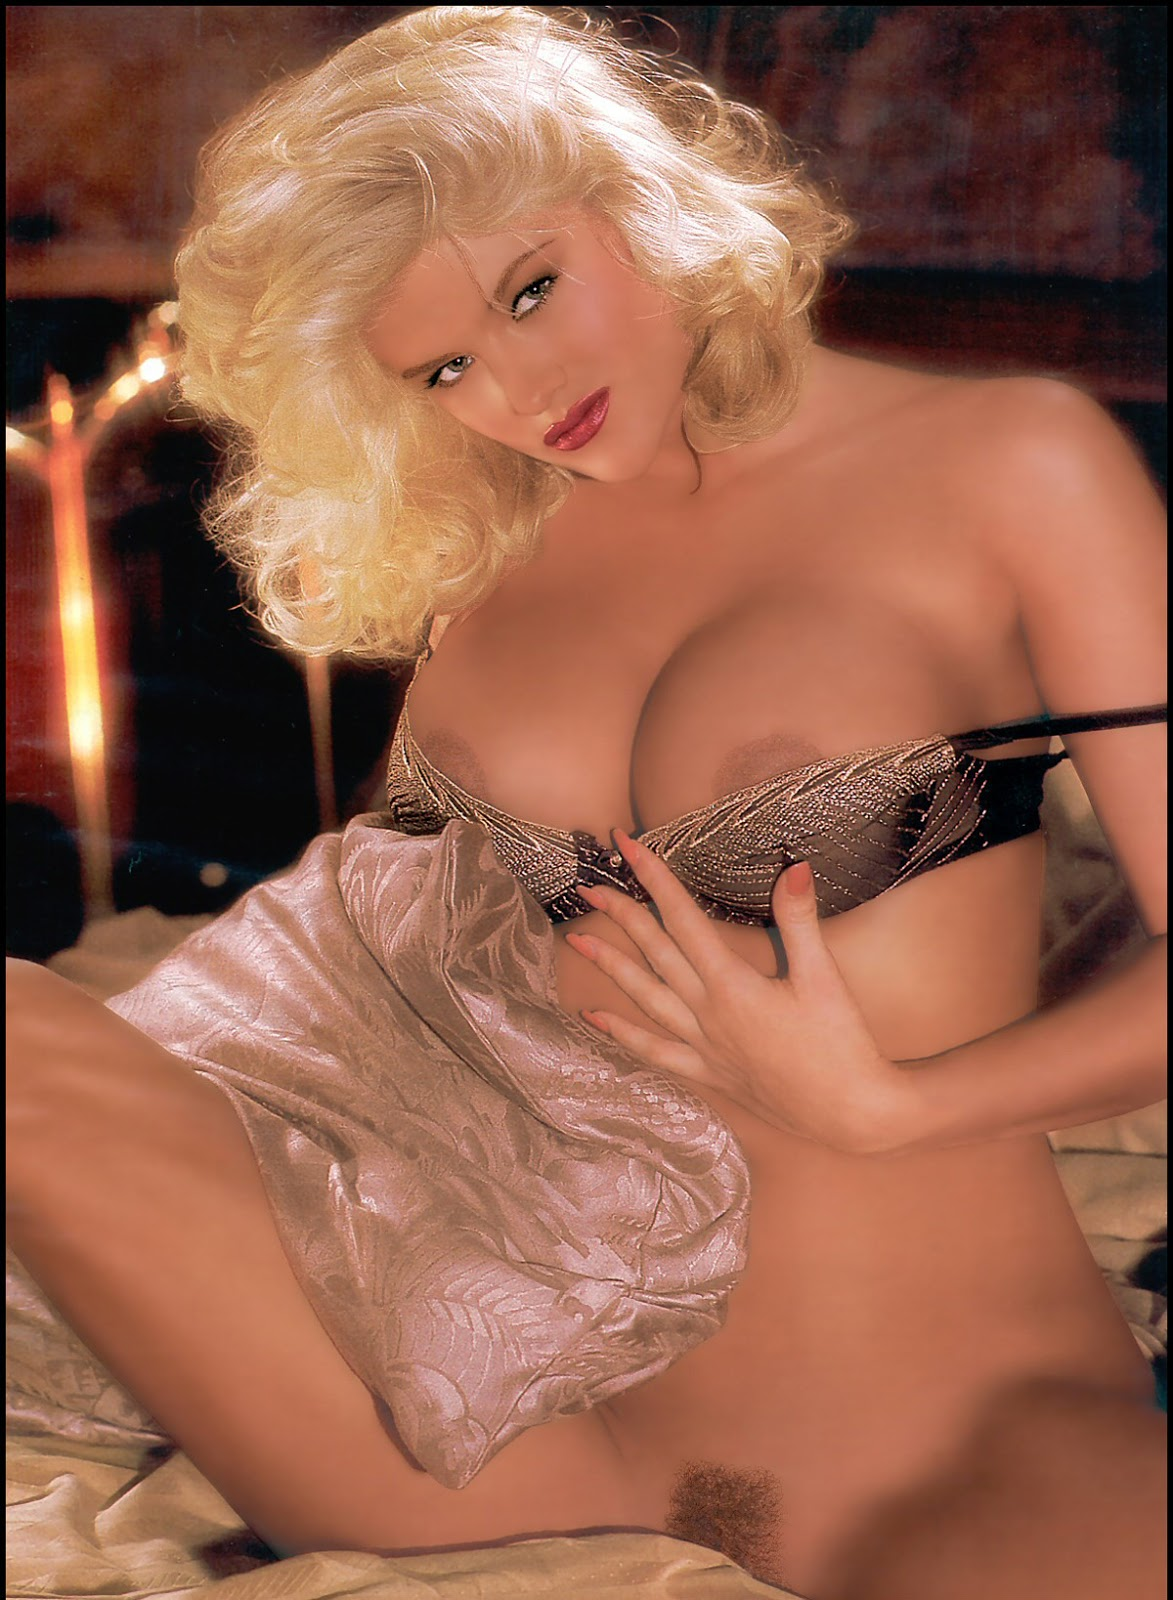 Hot Naked Chicks!: Anna Nicole smith naked